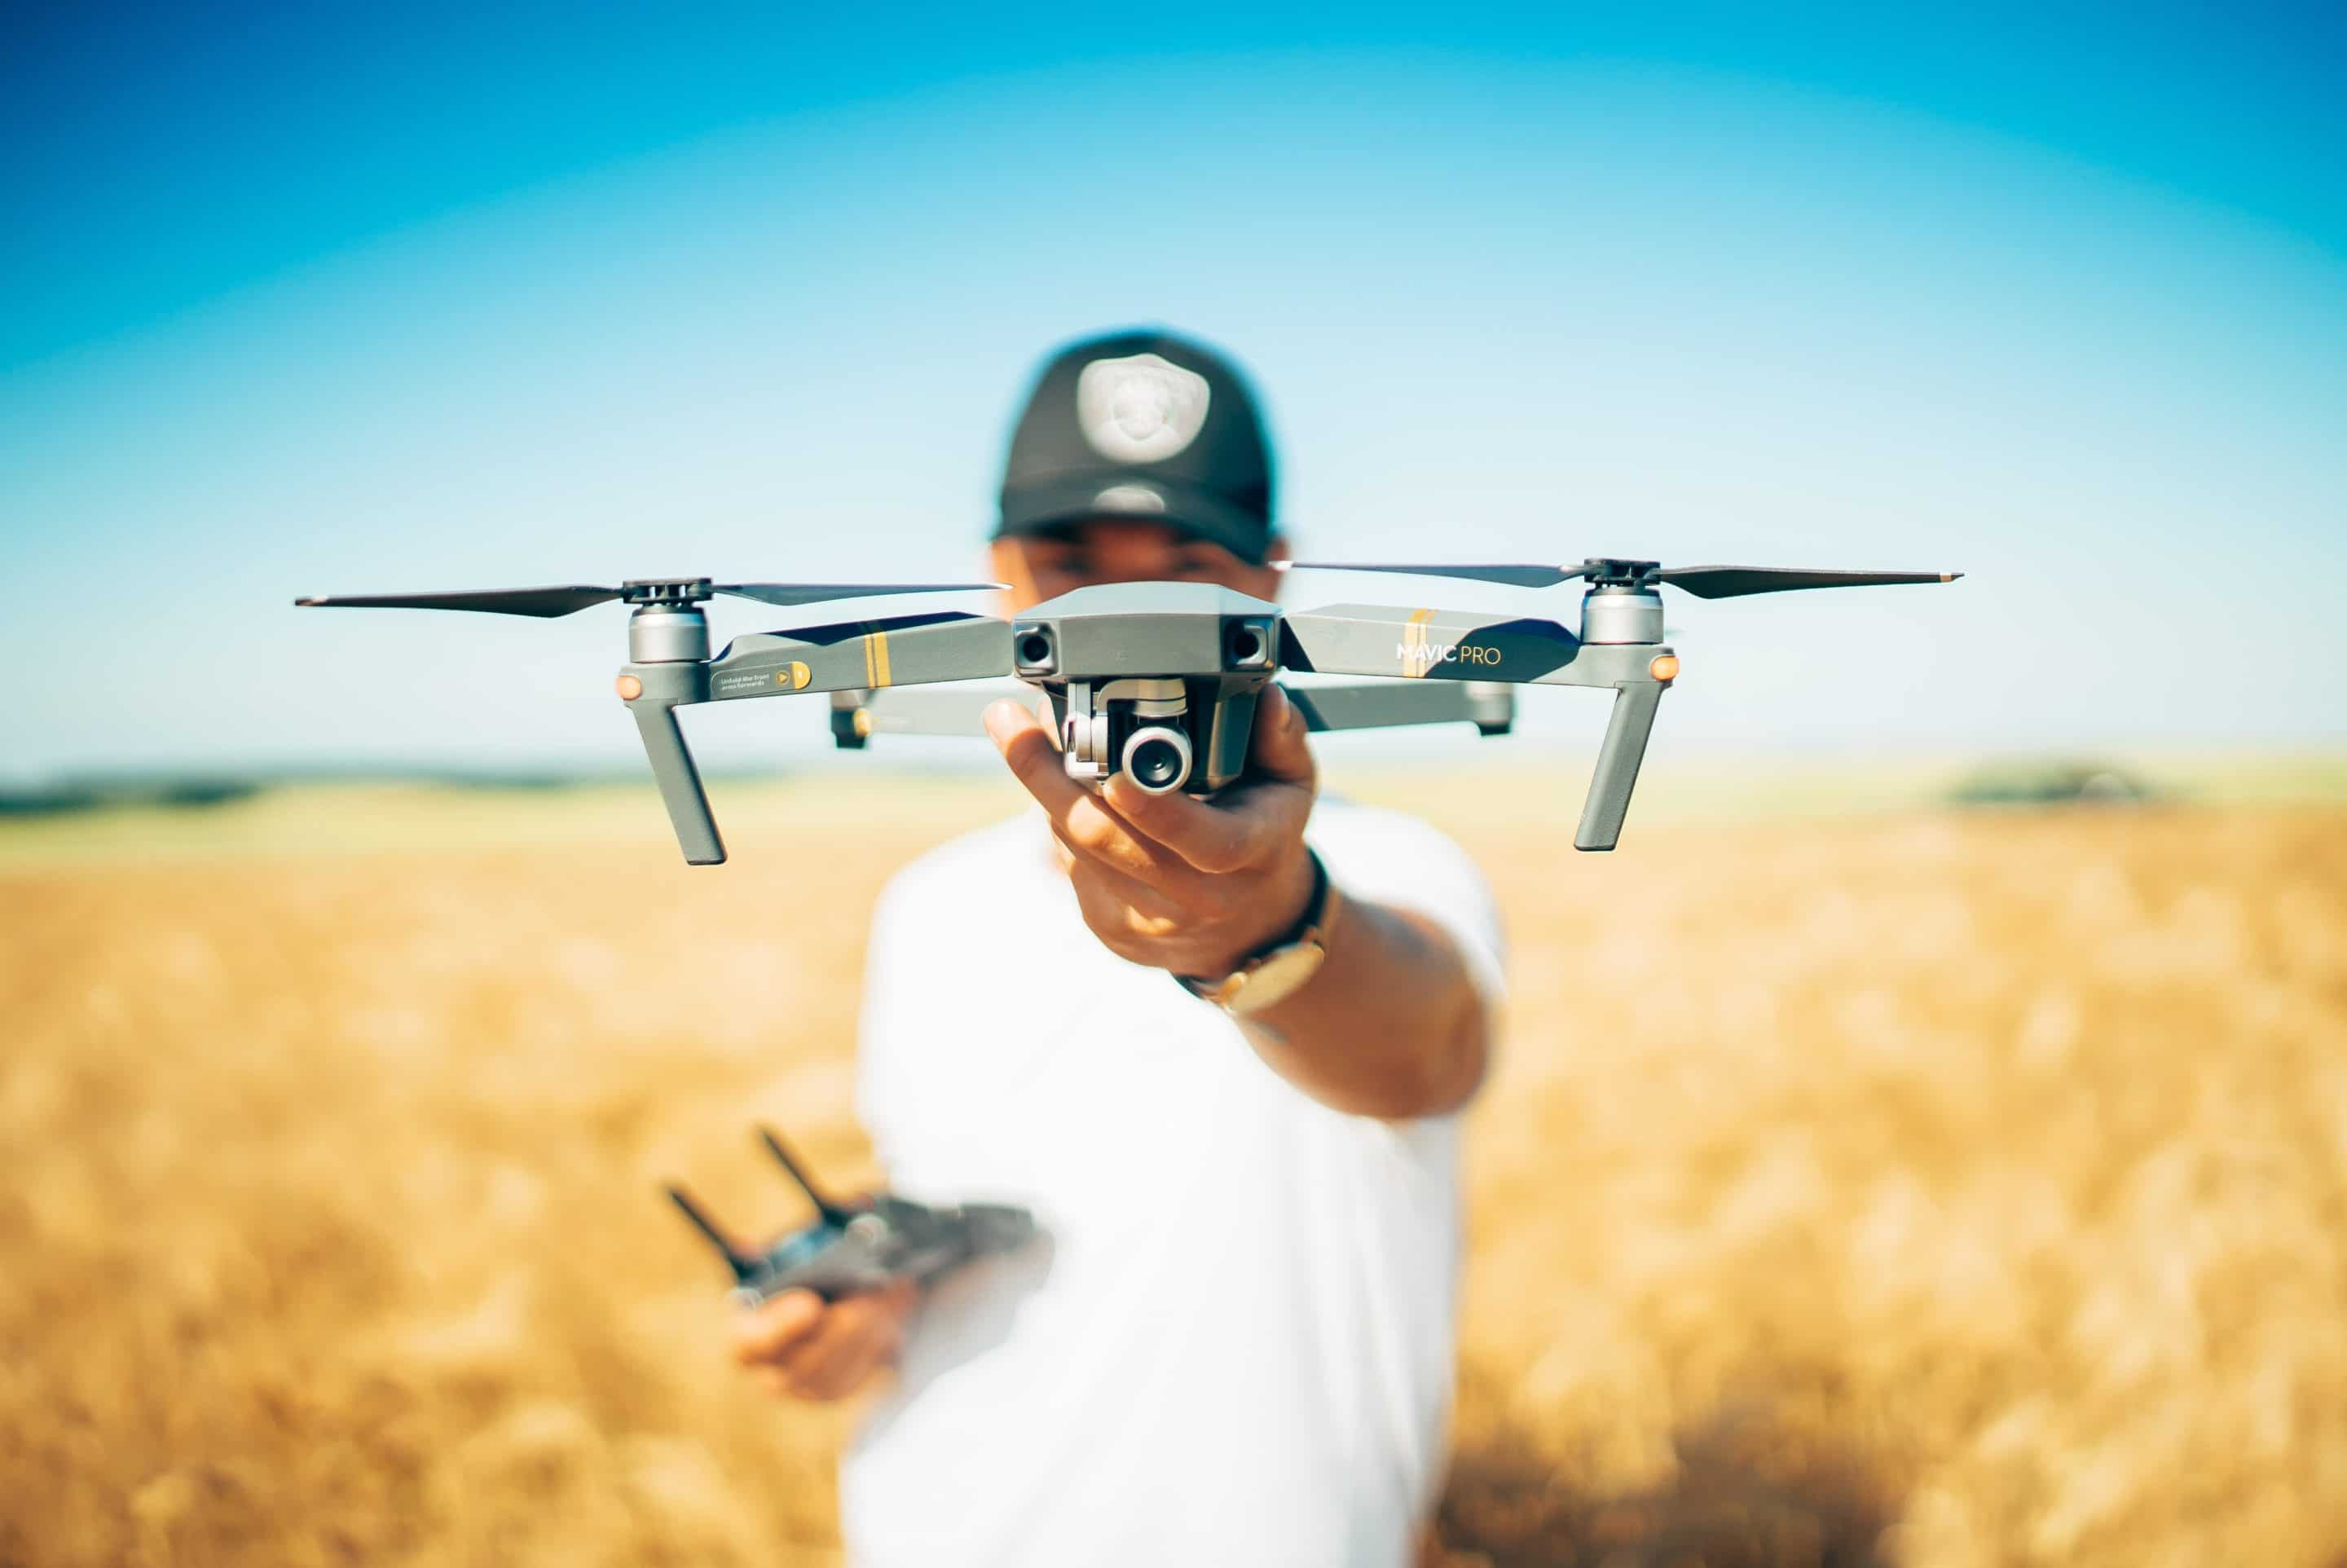 Drone used in agriculture